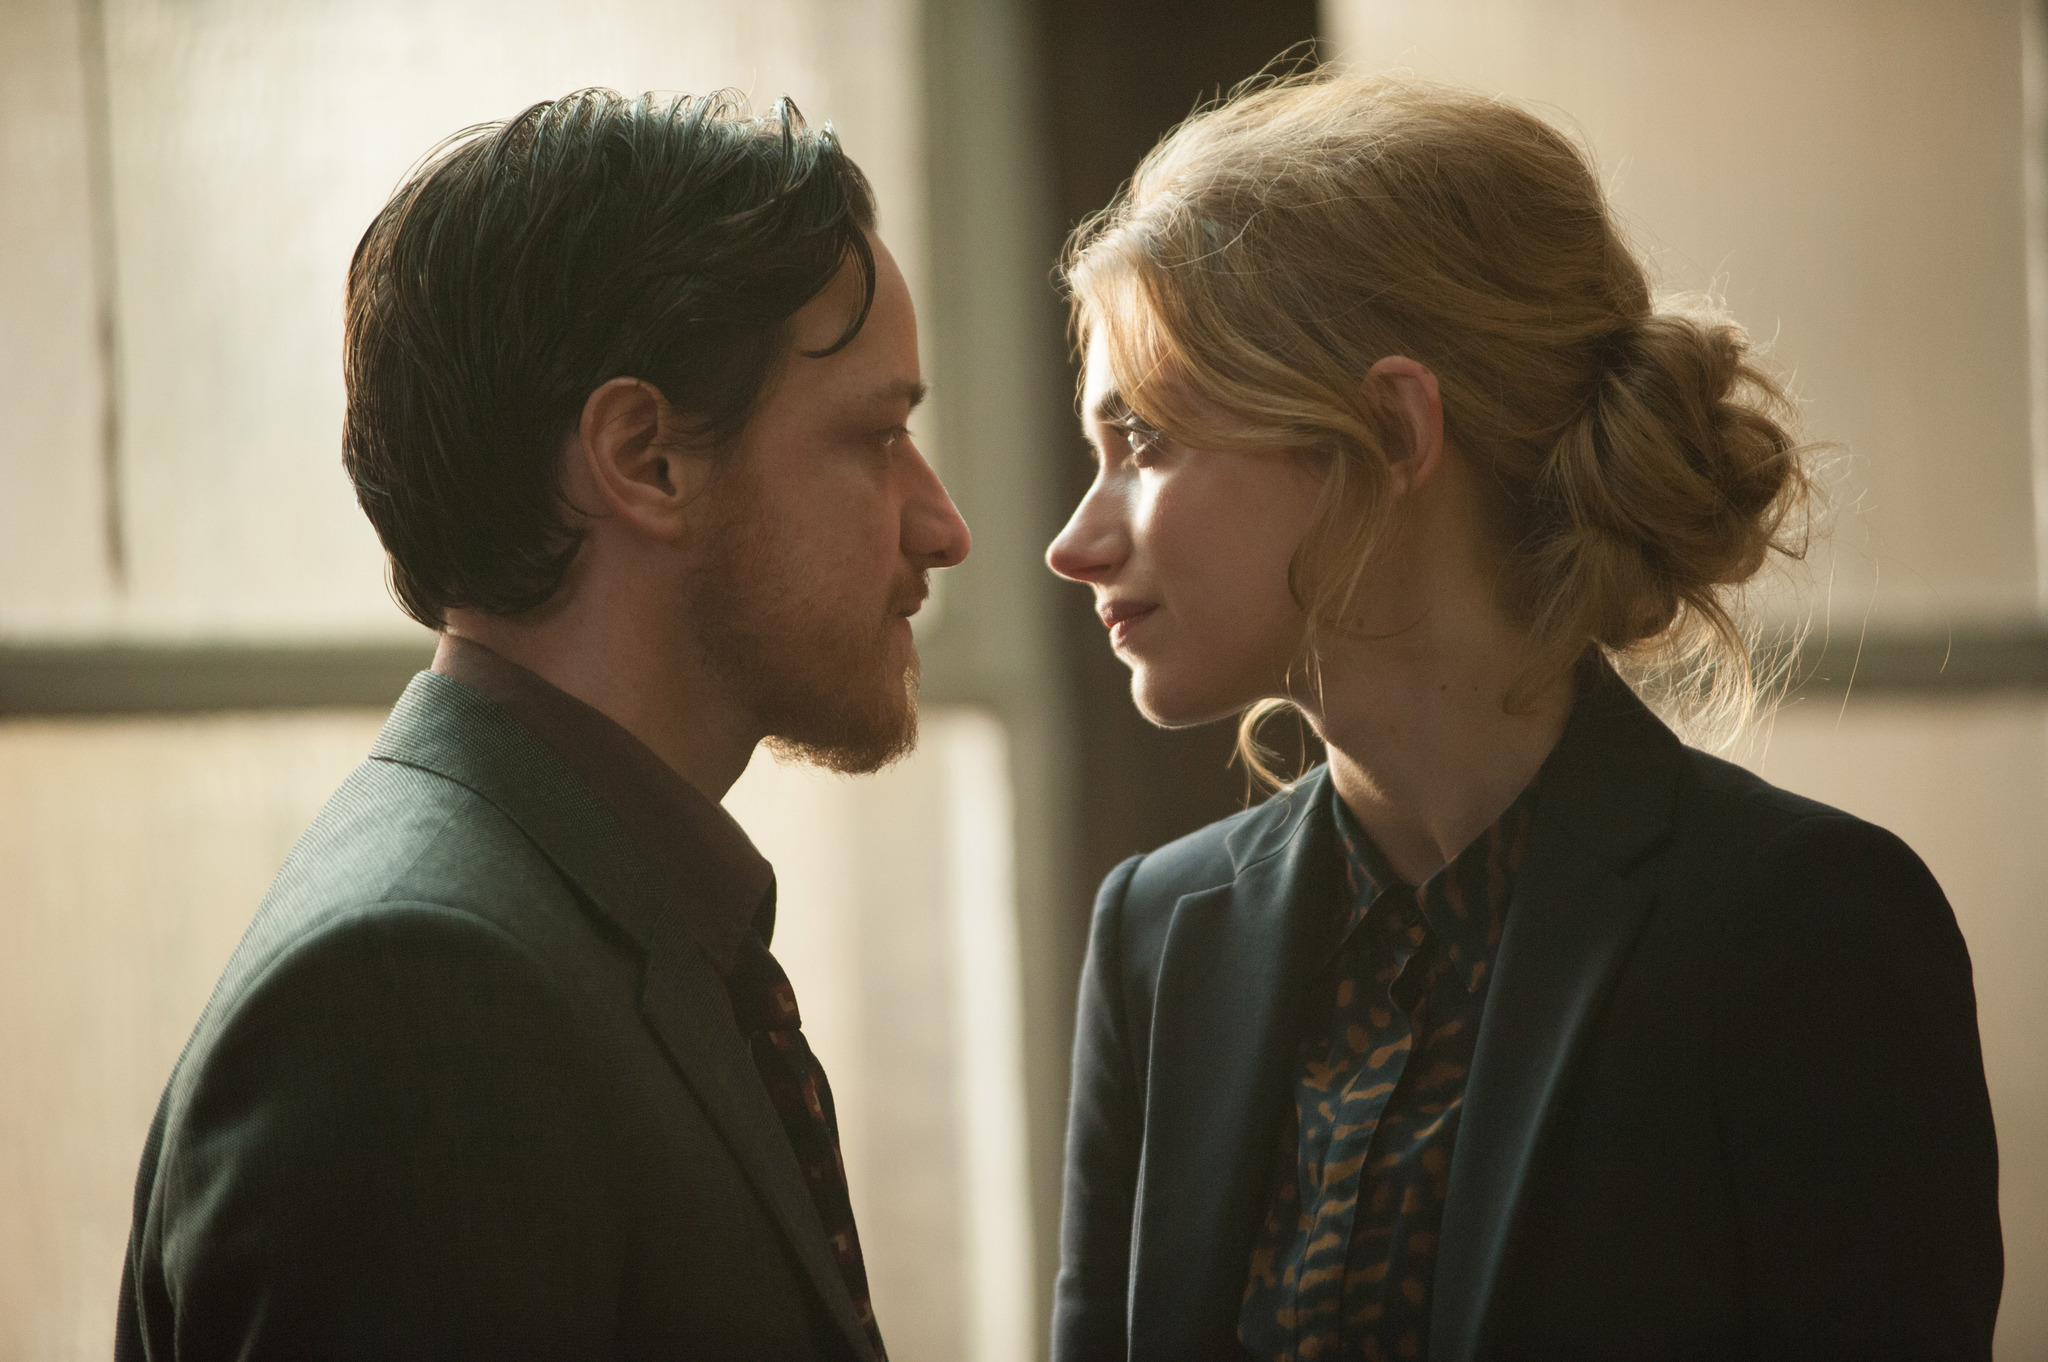 James McAvoy and Imogen Poots in Filth (2013)